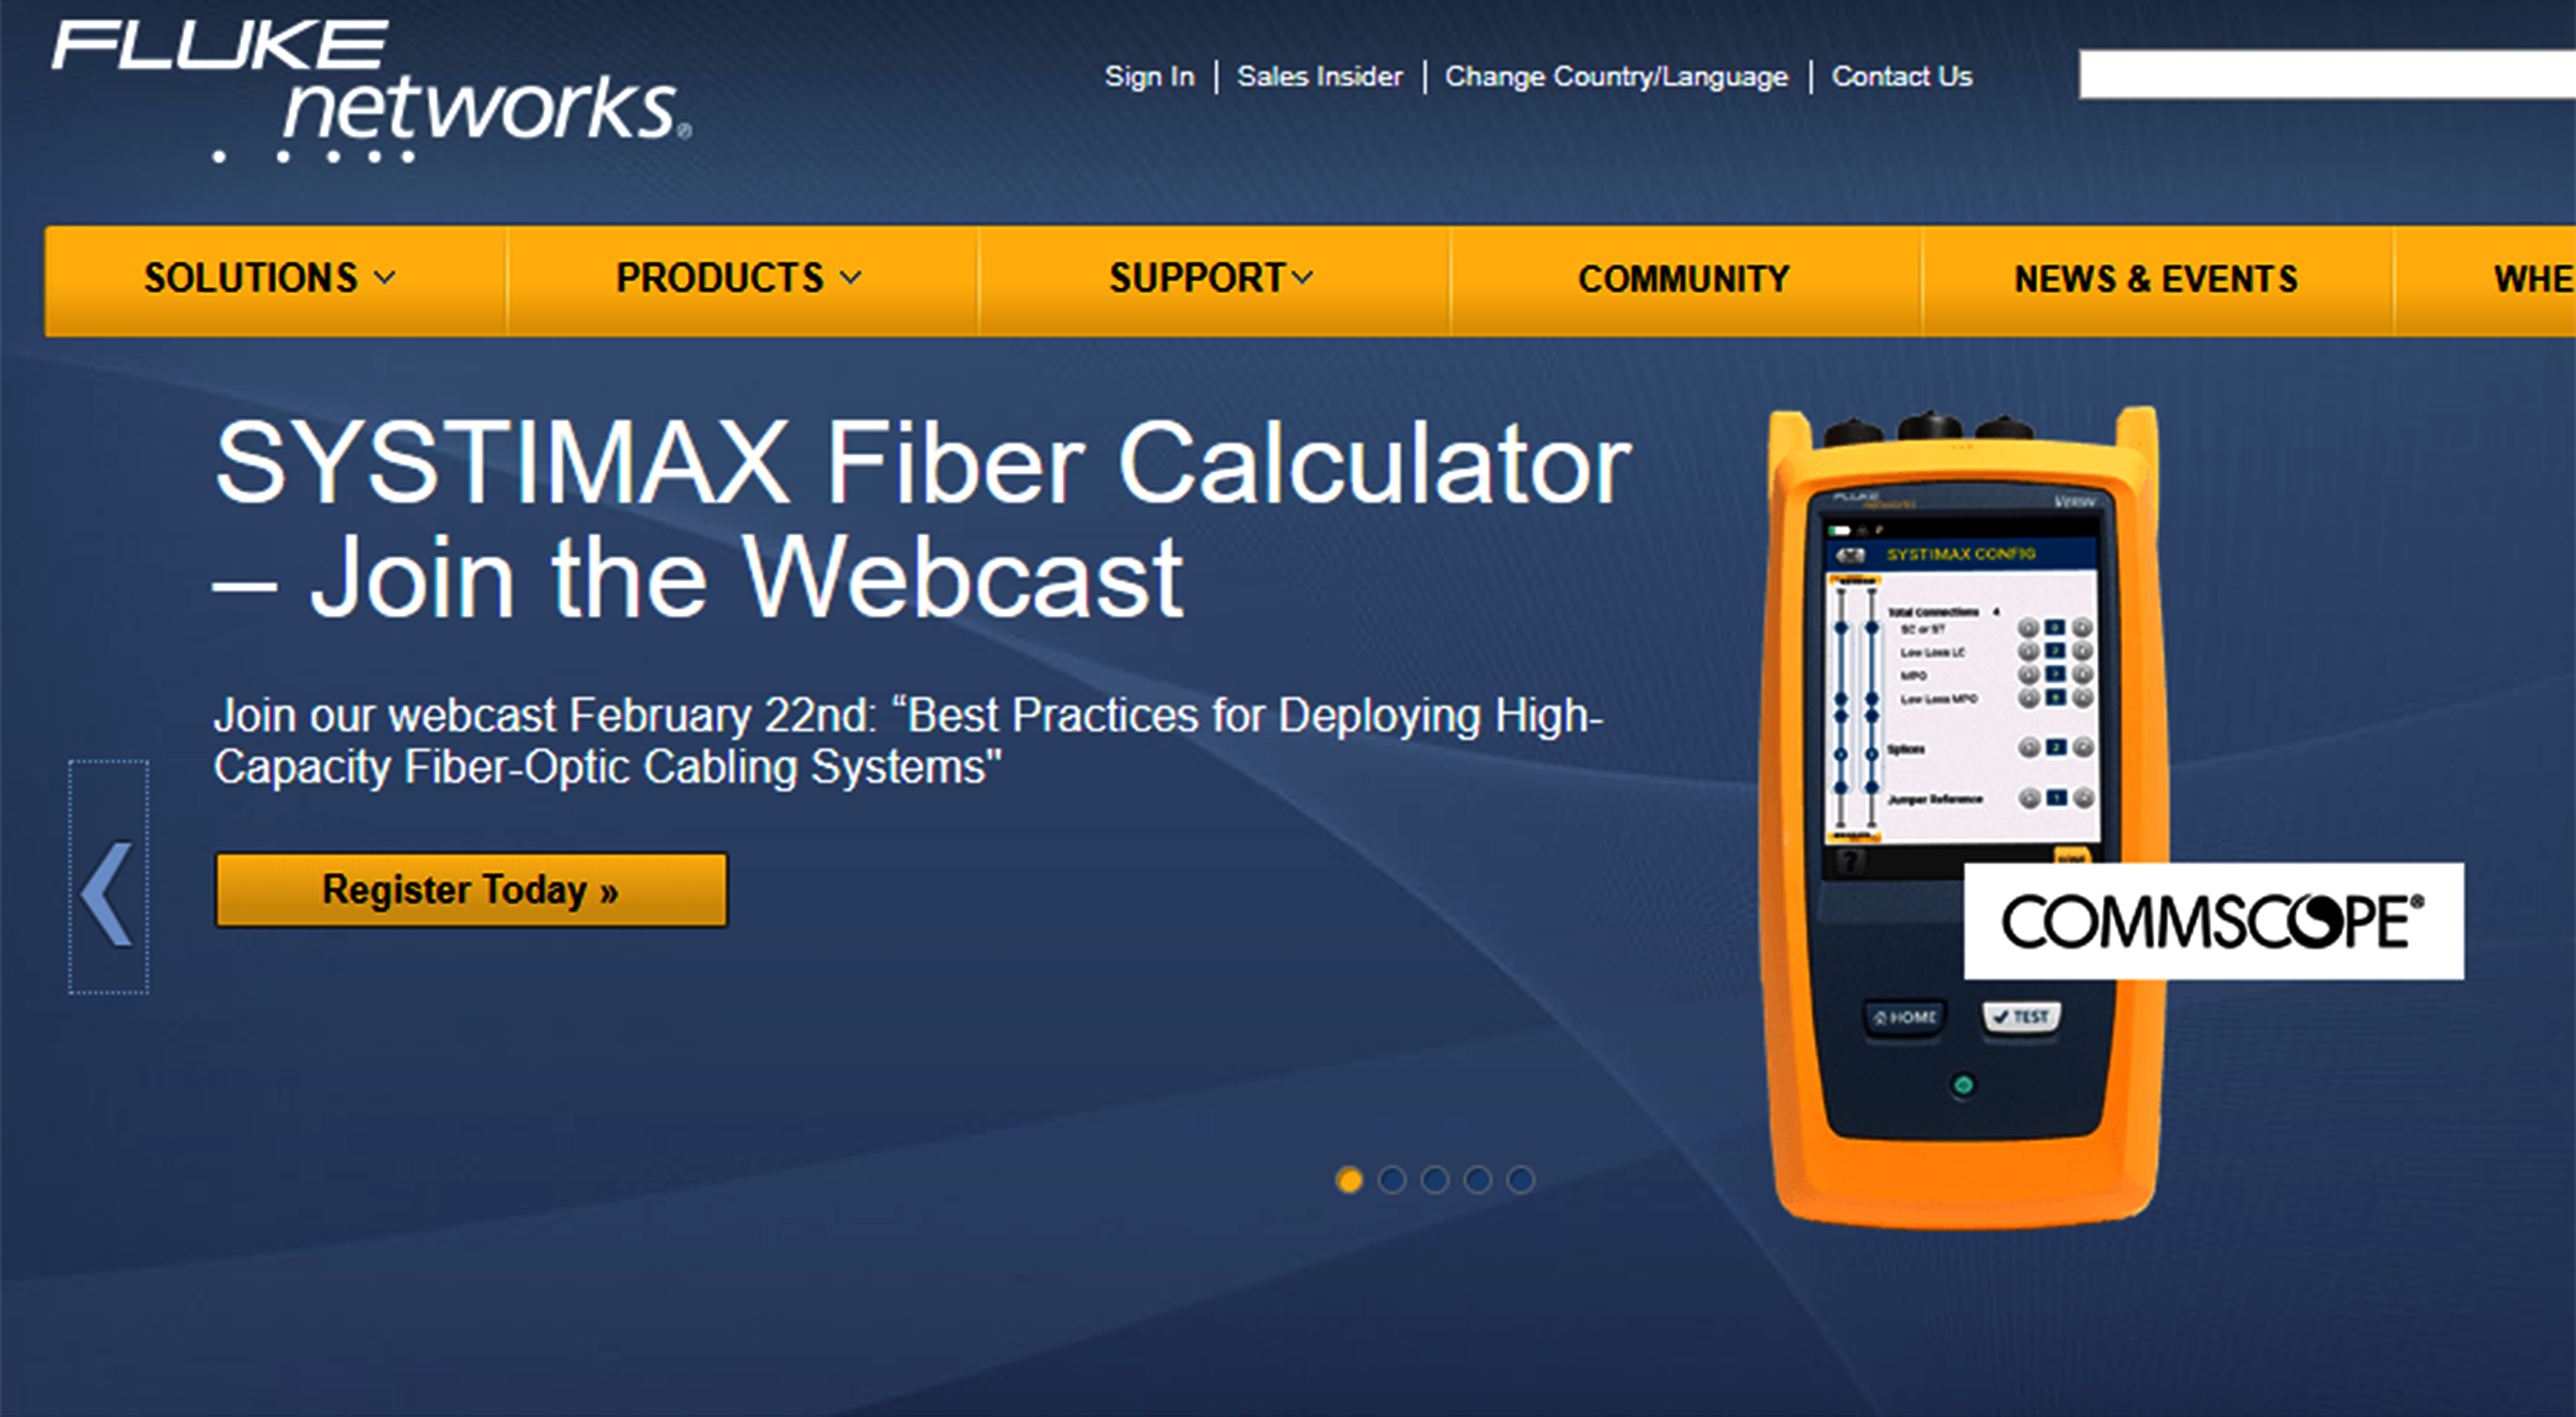 CommScope partners with Fluke Networks for optical fibre certification